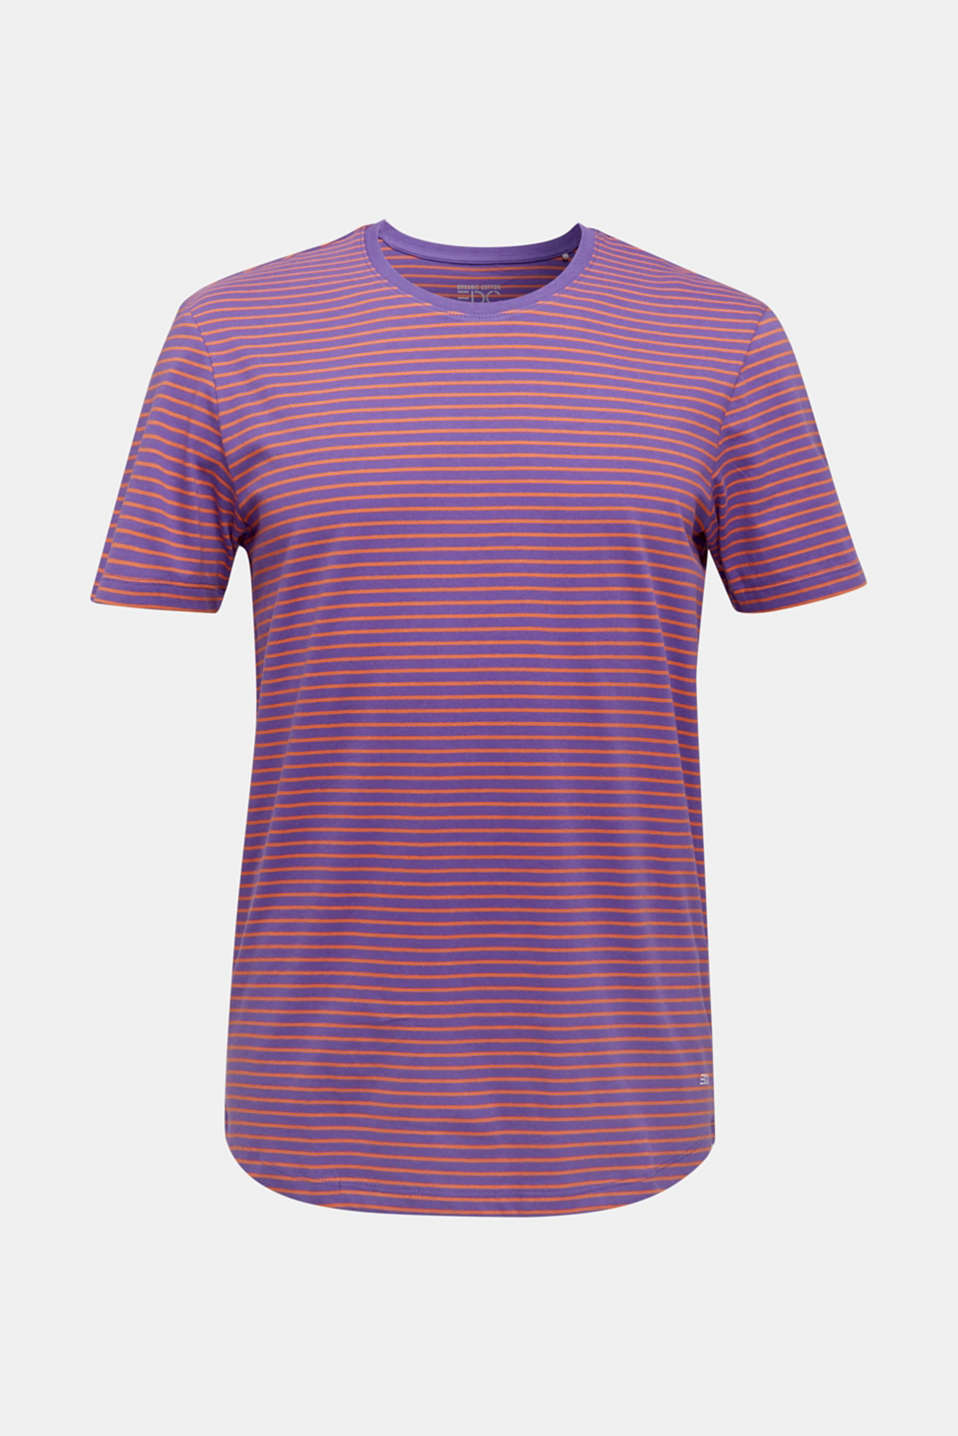 Jersey T-shirt with stripes, 100% cotton, PURPLE 3, detail image number 7